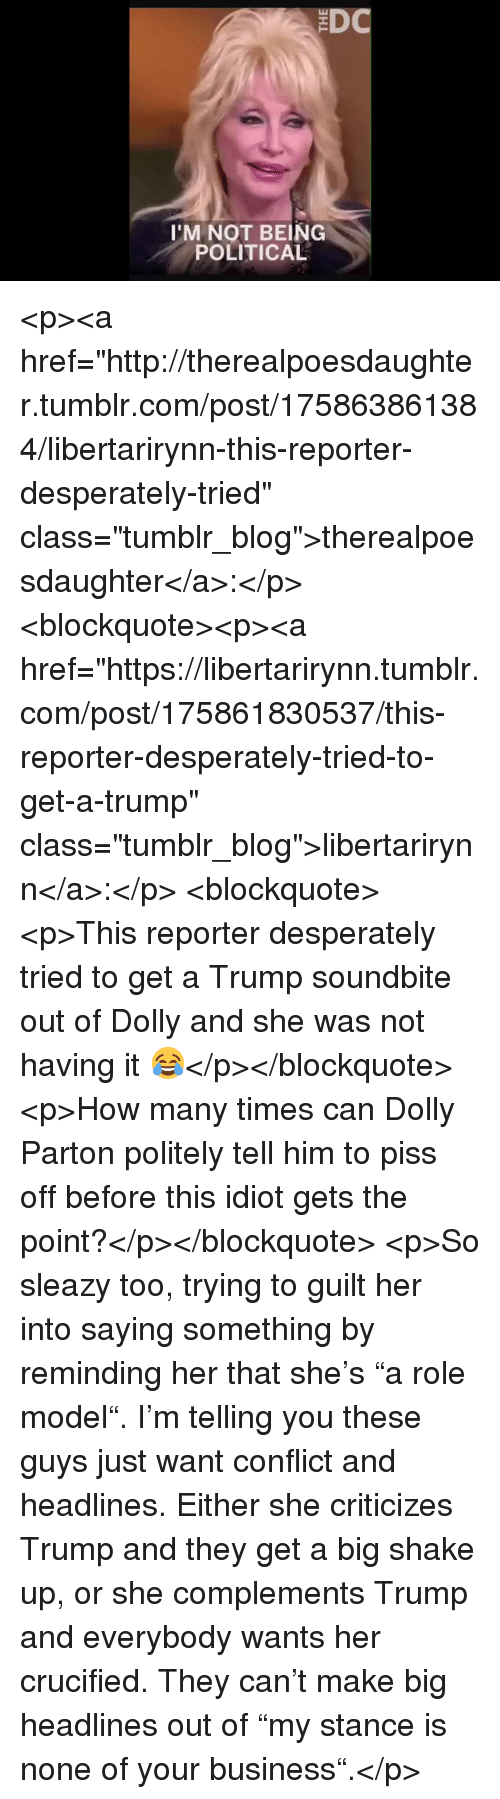 """How Many Times, Tumblr, and Blog: 'M NOT BEING  POLITICAL <p><a href=""""http://therealpoesdaughter.tumblr.com/post/175863861384/libertarirynn-this-reporter-desperately-tried"""" class=""""tumblr_blog"""">therealpoesdaughter</a>:</p>  <blockquote><p><a href=""""https://libertarirynn.tumblr.com/post/175861830537/this-reporter-desperately-tried-to-get-a-trump"""" class=""""tumblr_blog"""">libertarirynn</a>:</p>  <blockquote><p>This reporter desperately tried to get a Trump soundbite out of Dolly and she was not having it 😂</p></blockquote>  <p>How many times can Dolly Parton politely tell him to piss off before this idiot gets the point?</p></blockquote>  <p>So sleazy too, trying to guilt her into saying something by reminding her that she's """"a role model"""". I'm telling you these guys just want conflict and headlines. Either she criticizes Trump and they get a big shake up, or she complements Trump and everybody wants her crucified. They can't make big headlines out of """"my stance is none of your business"""".</p>"""